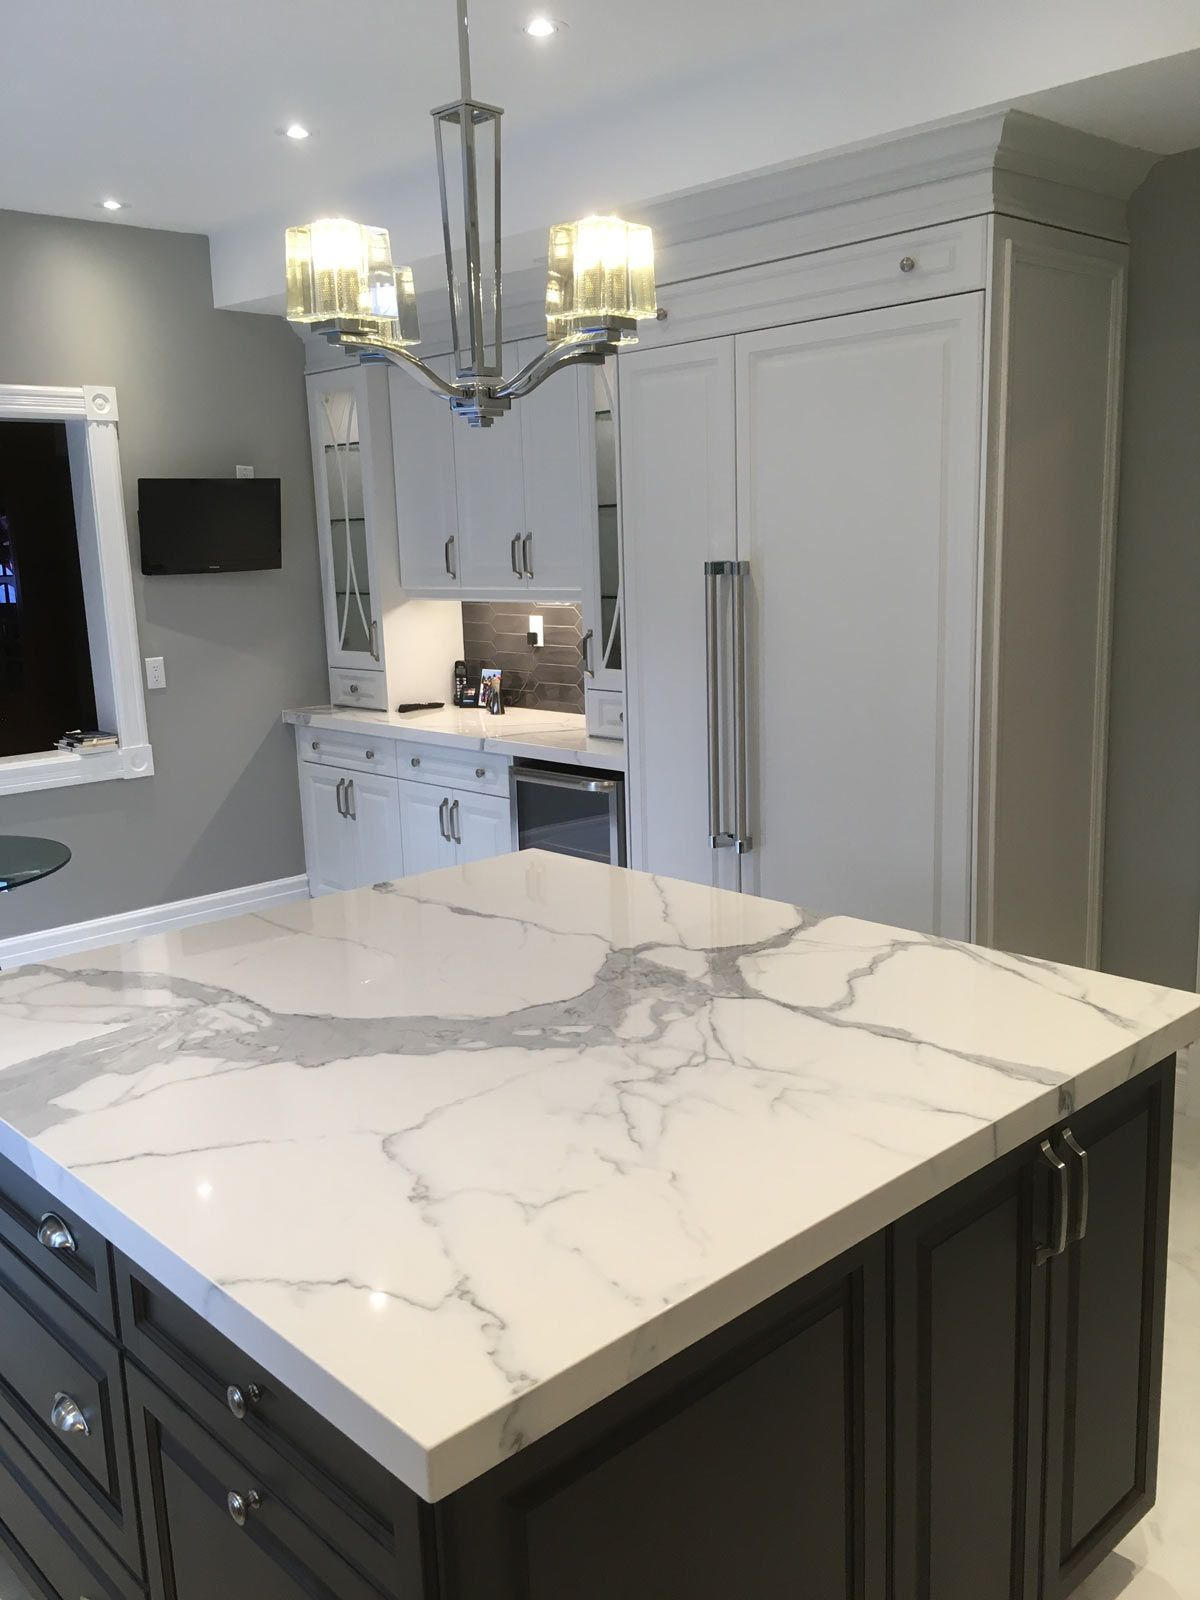 Custom Porcelain Countertops Contractor Toronto (With images)  Porcelain countertops